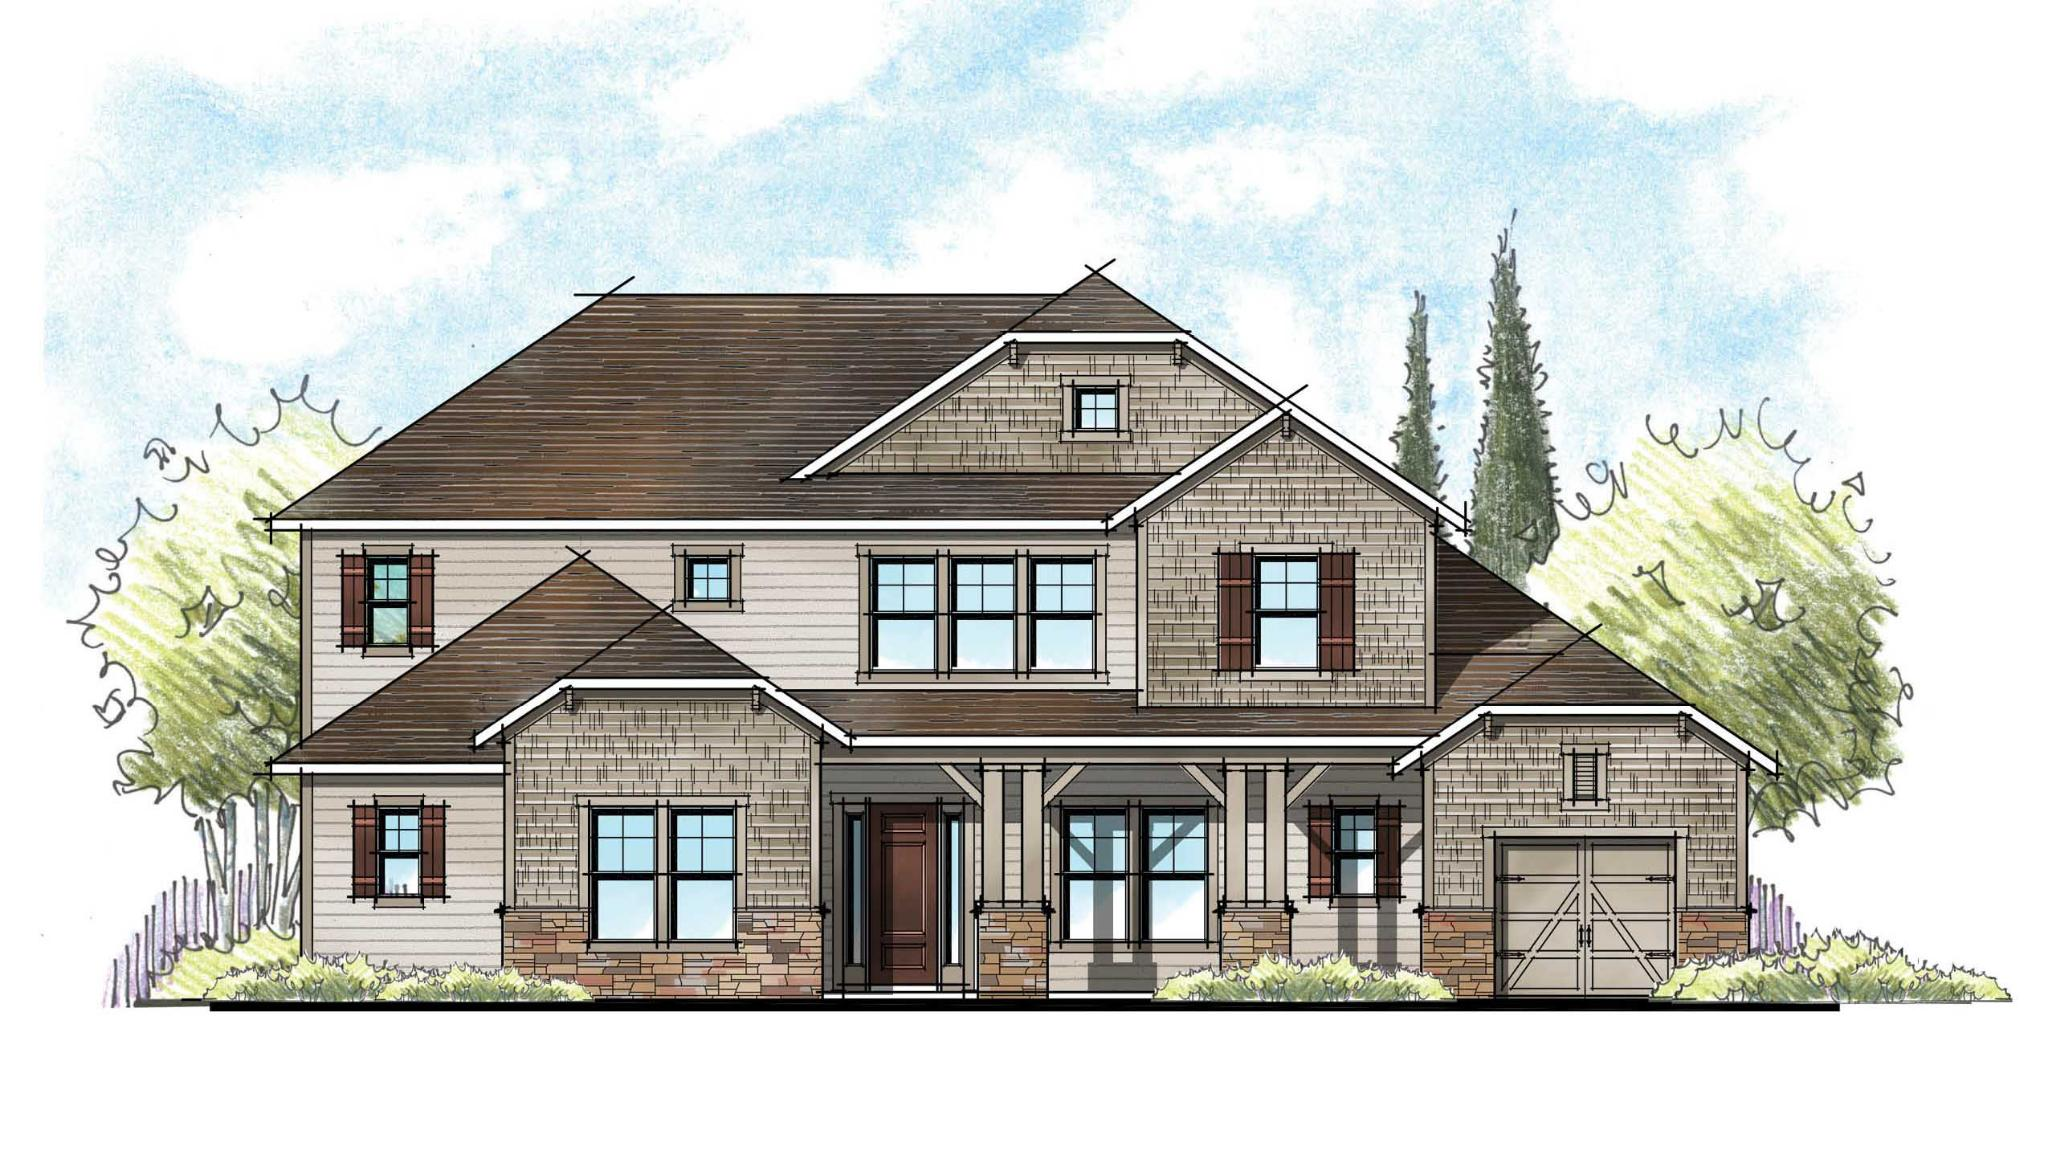 The Charlotte English Country Elevation 4